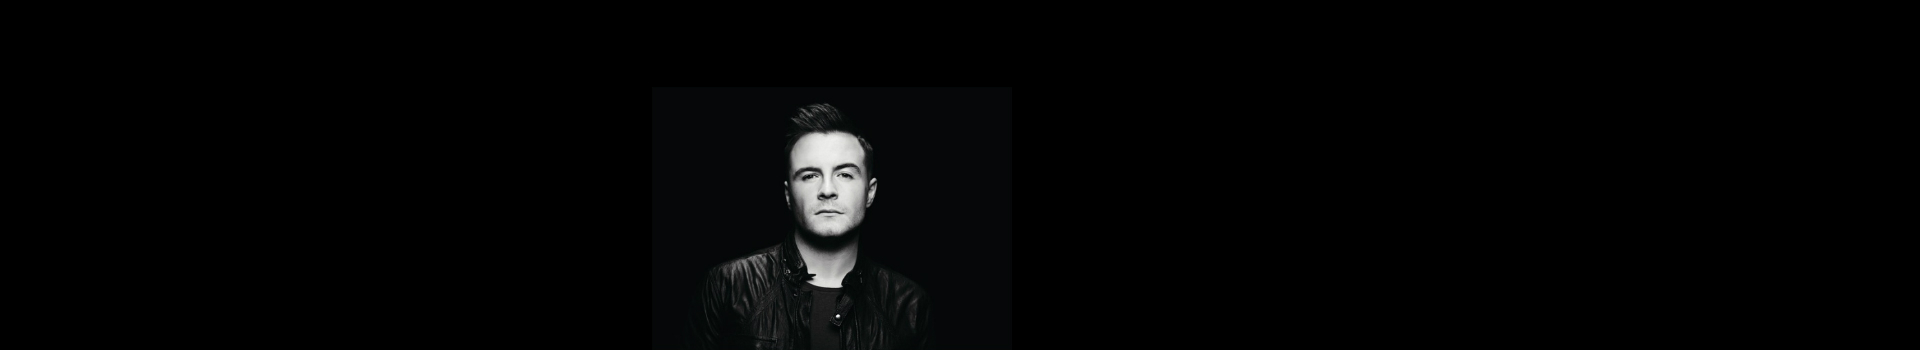 Shane Filan tickets London 2016